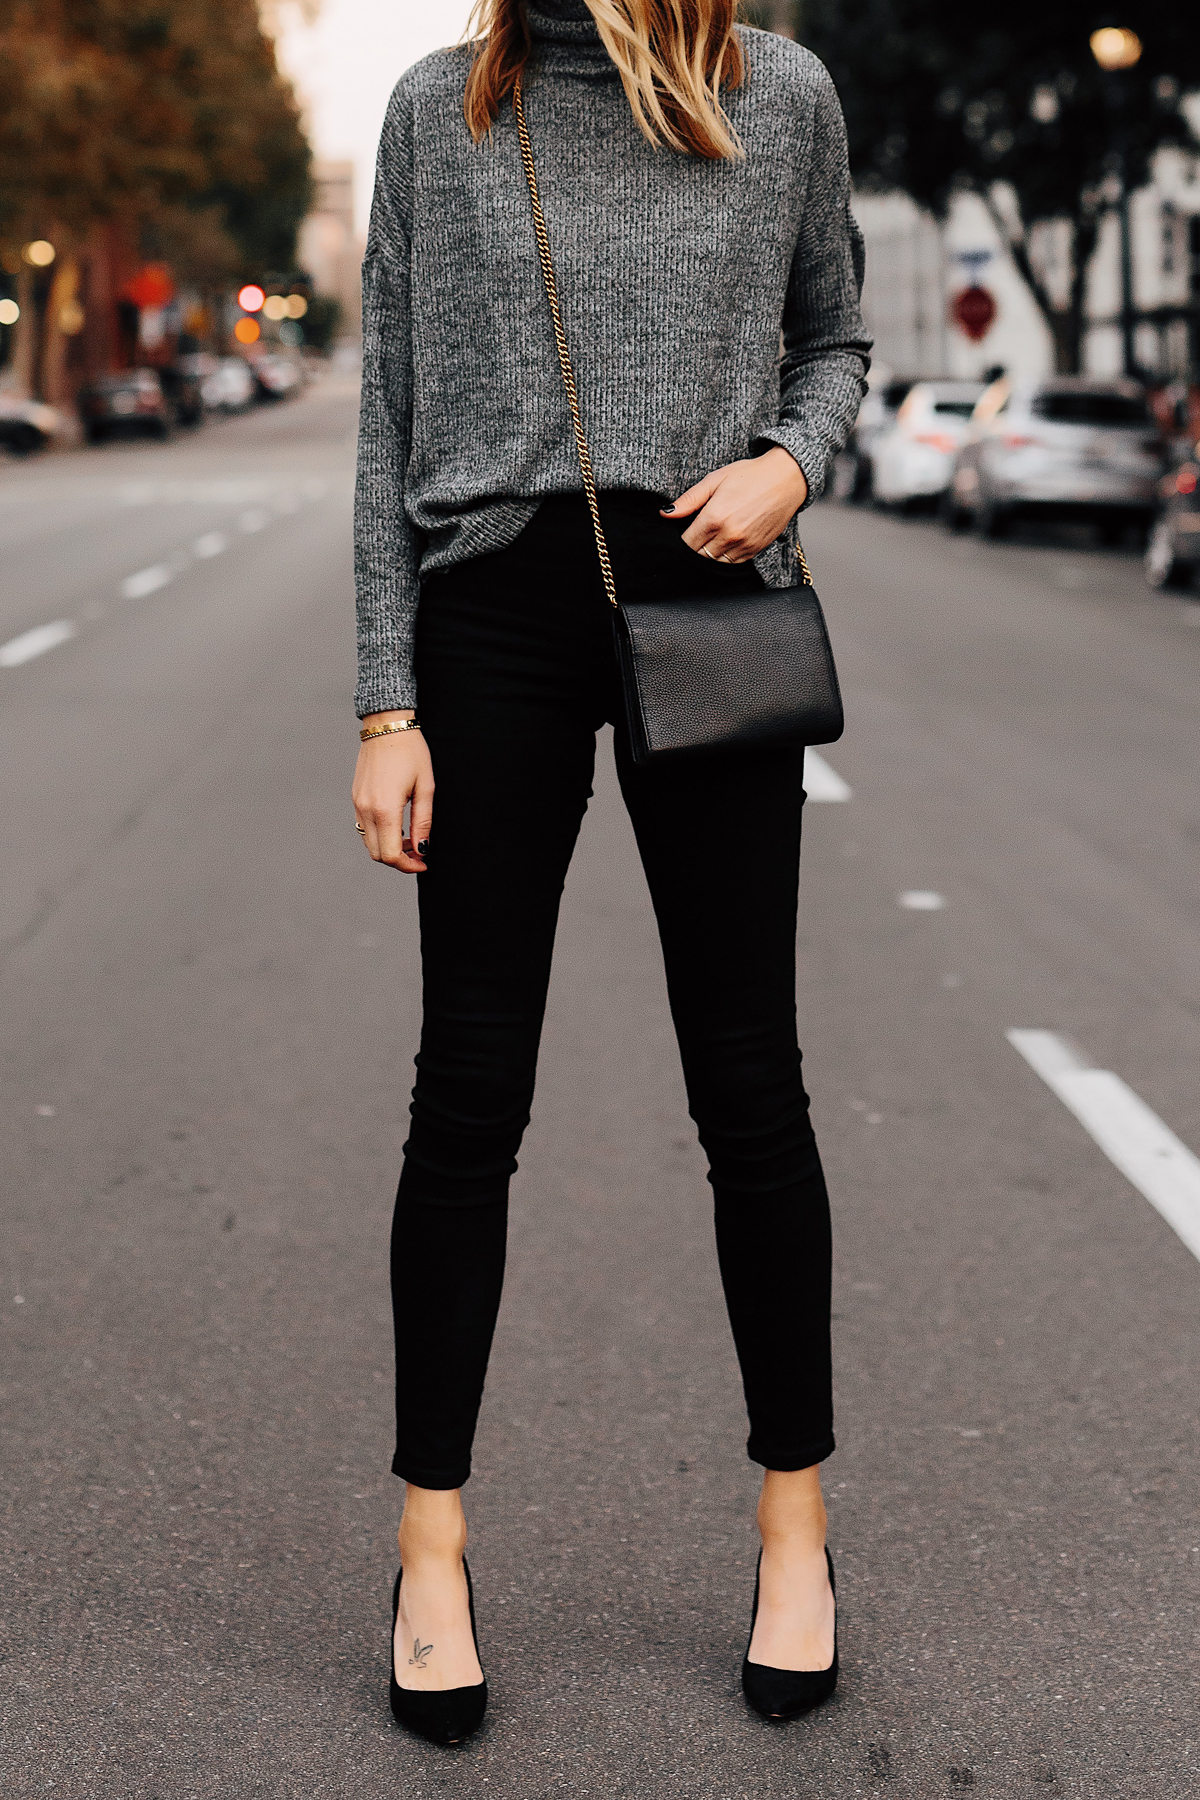 Woman Wearing Grey Turtleneck Top Black Skinny Jeans Black Pumps Outfit Fashion Jackson San Diego Fashion Blogger Street Style